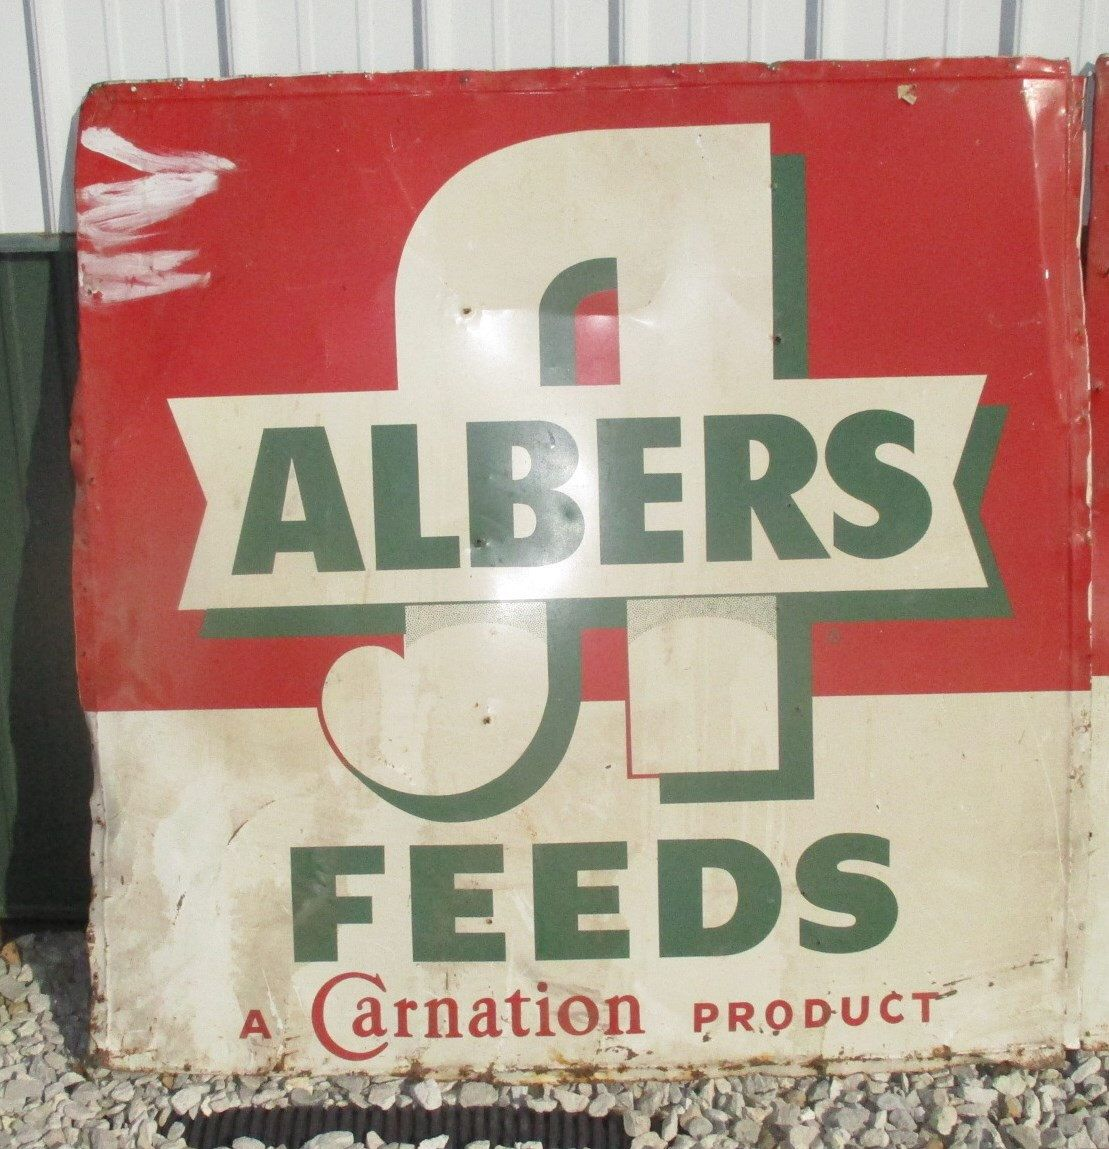 Pin by Amy Rogers on Signage | Metal signs, Signs, Advertising signs